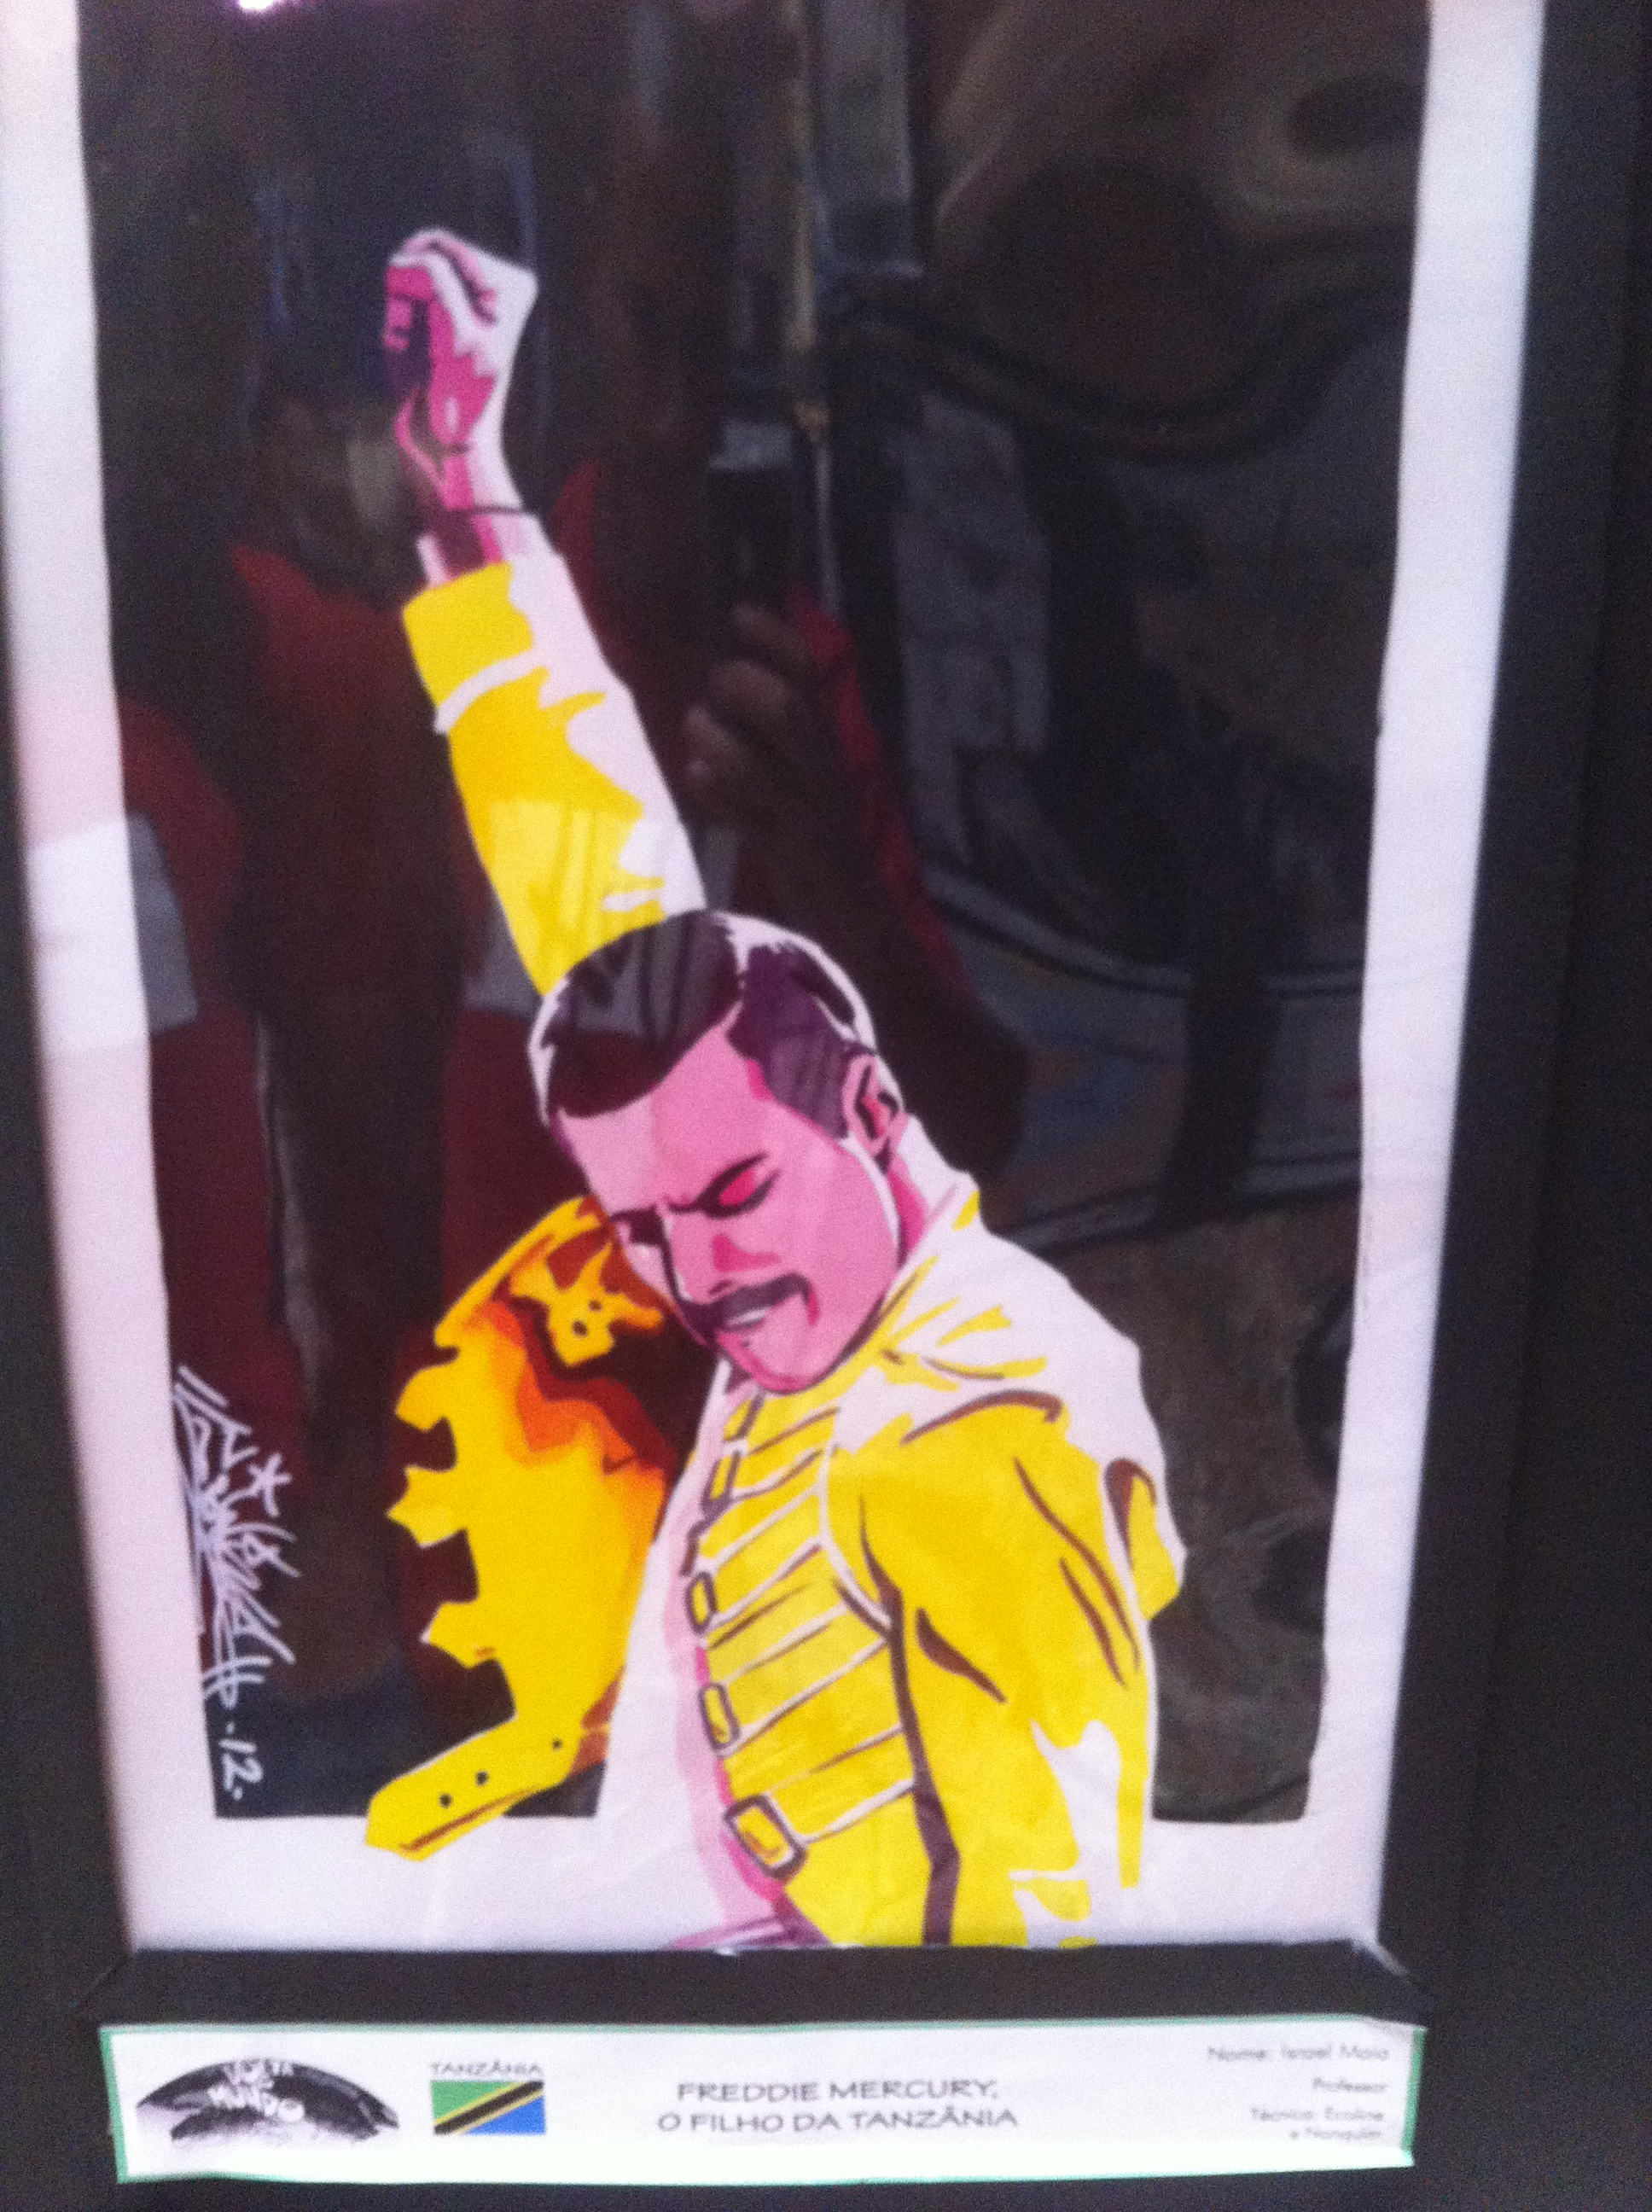 Pintura do Freddie Mercury